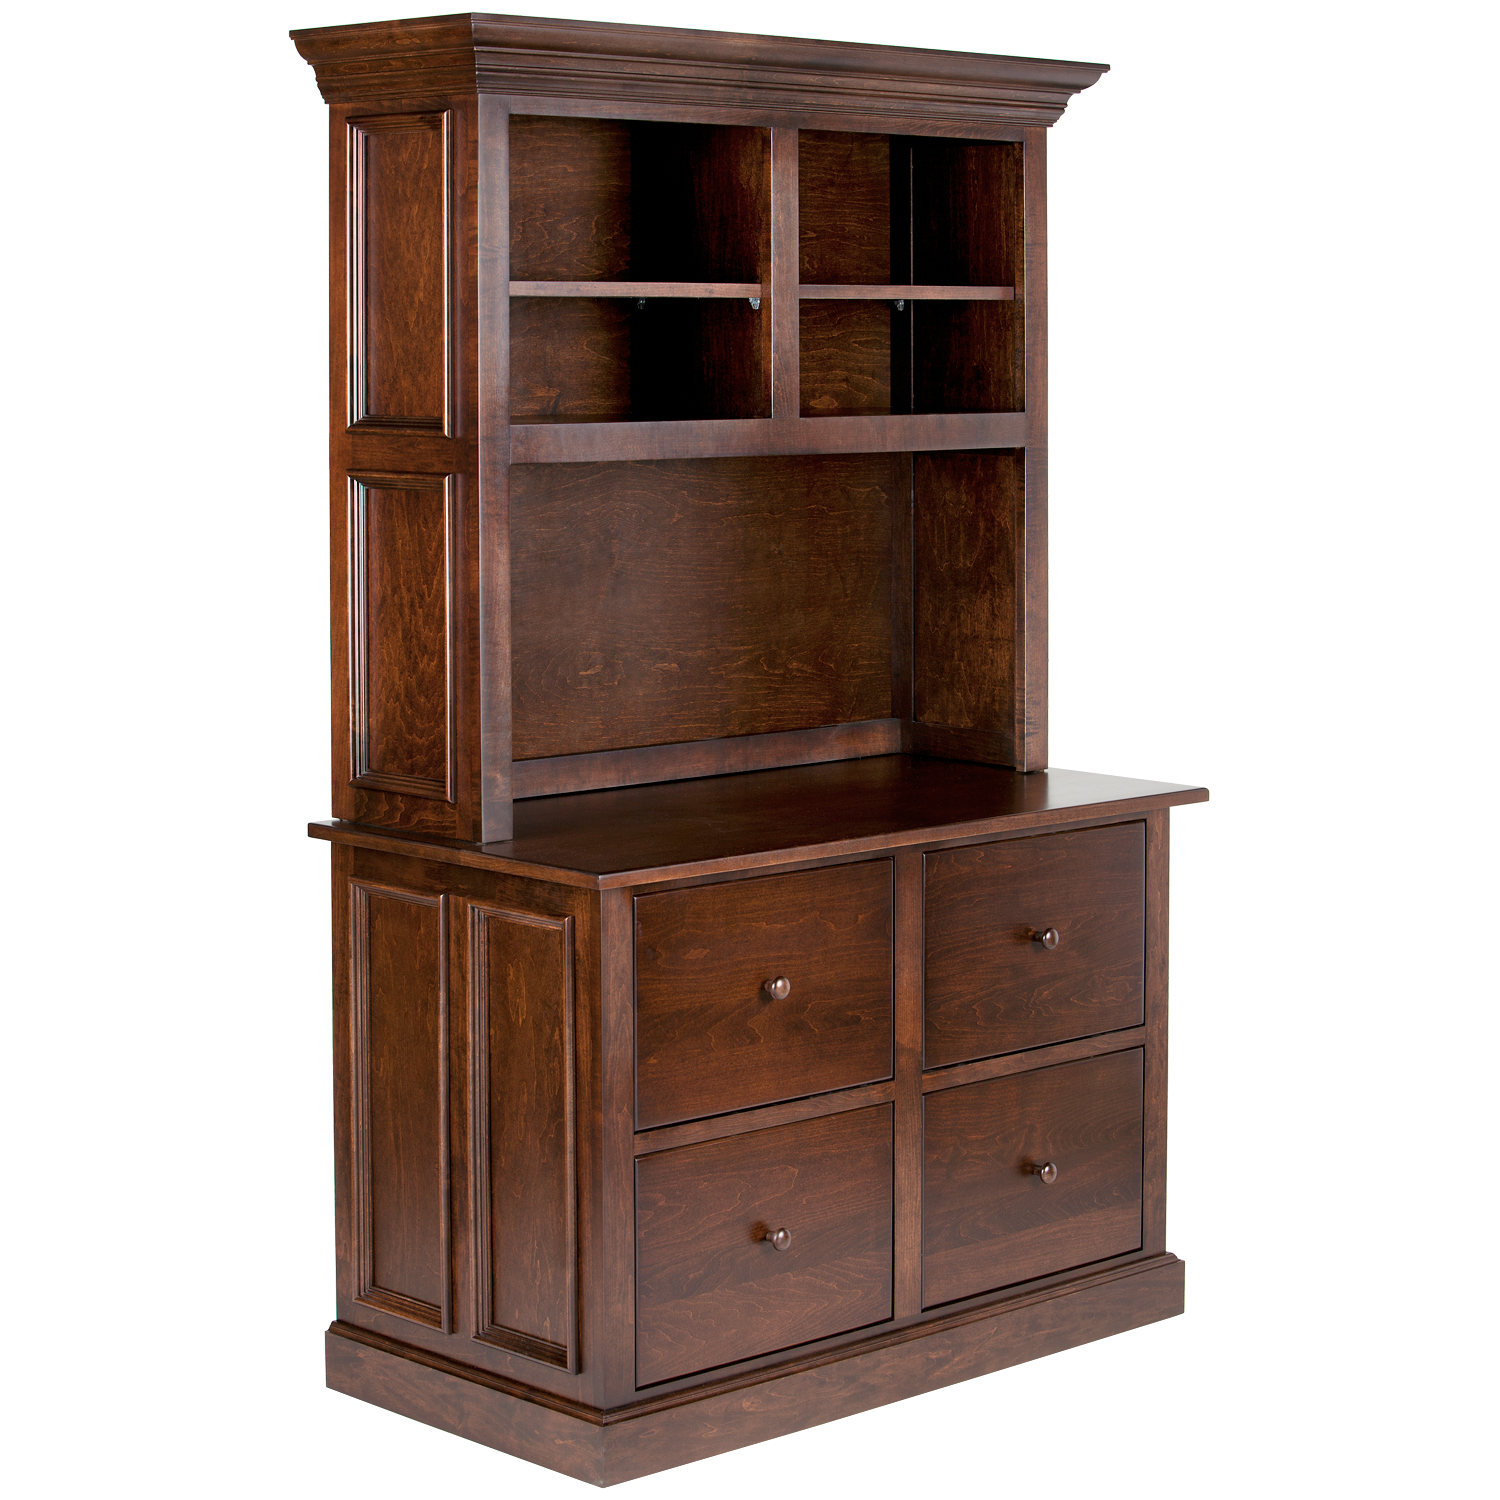 Tuscany Hutch for 45W Lateral File Cabinet